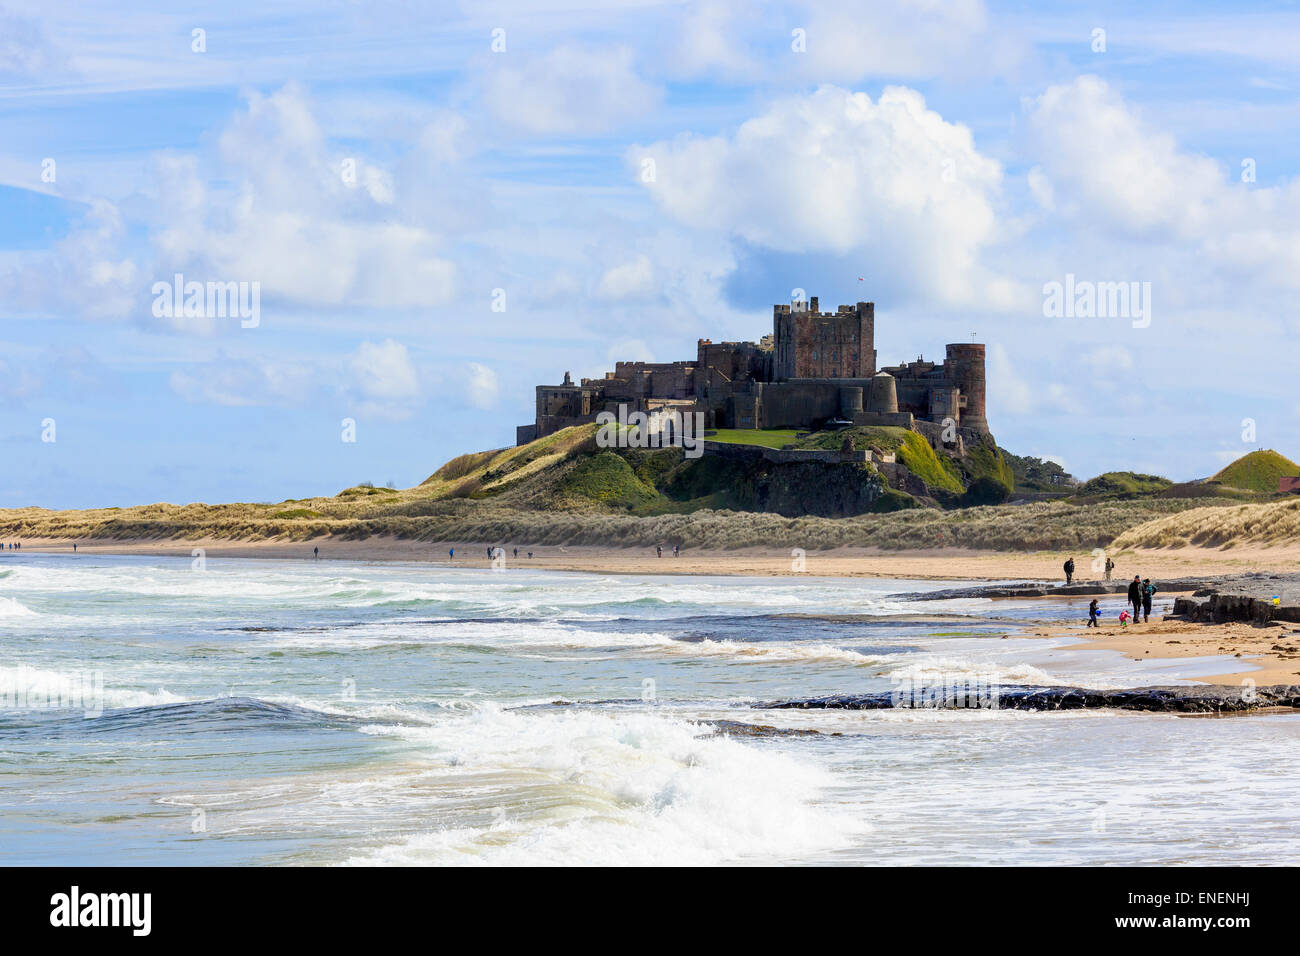 Bamburgh Castle, Northumberland, England, UK - Stock Image